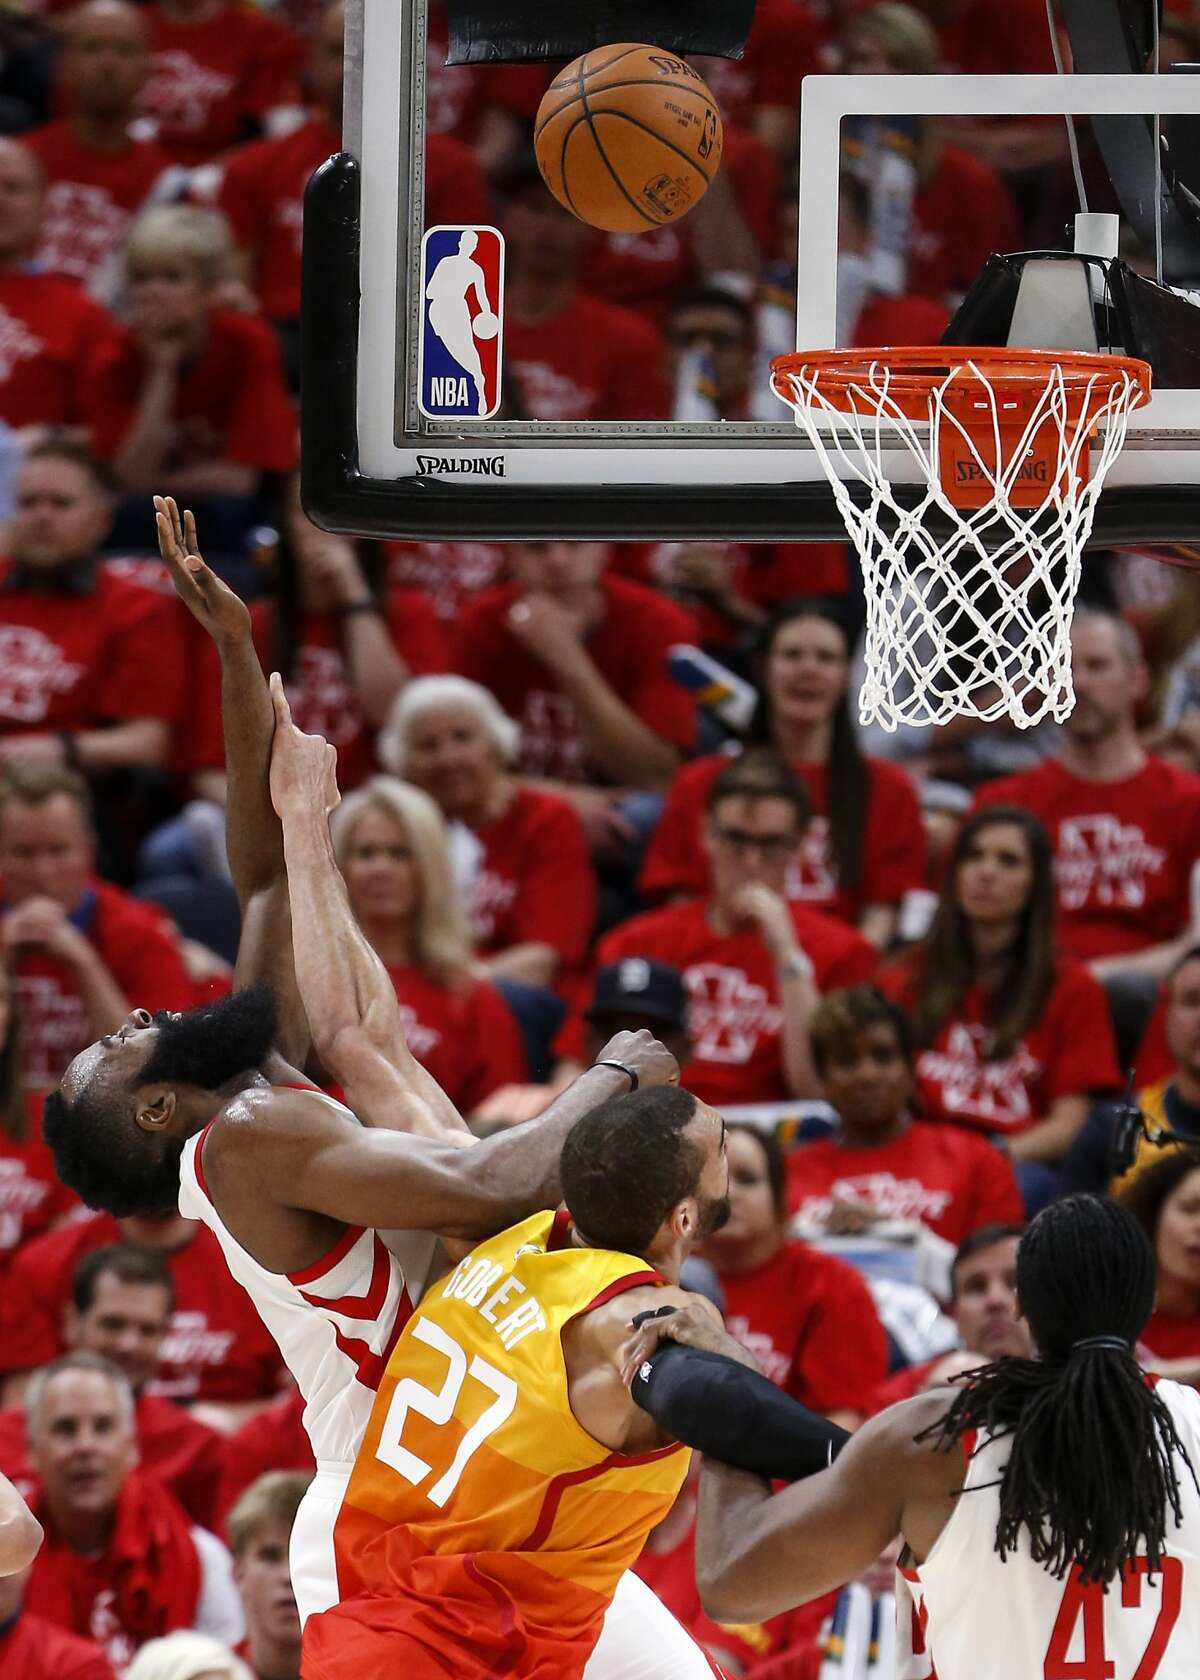 Houston Rockets guard James Harden (13) is fouled by Utah Jazz center Rudy Gobert (27) as he takes a shot during the second half of Game 3 of the NBA second-round playoff series at Vivint Smart Home Arena Friday, May 4, 2018 in Salt Lake City. (Michael Ciaglo / Houston Chronicle)